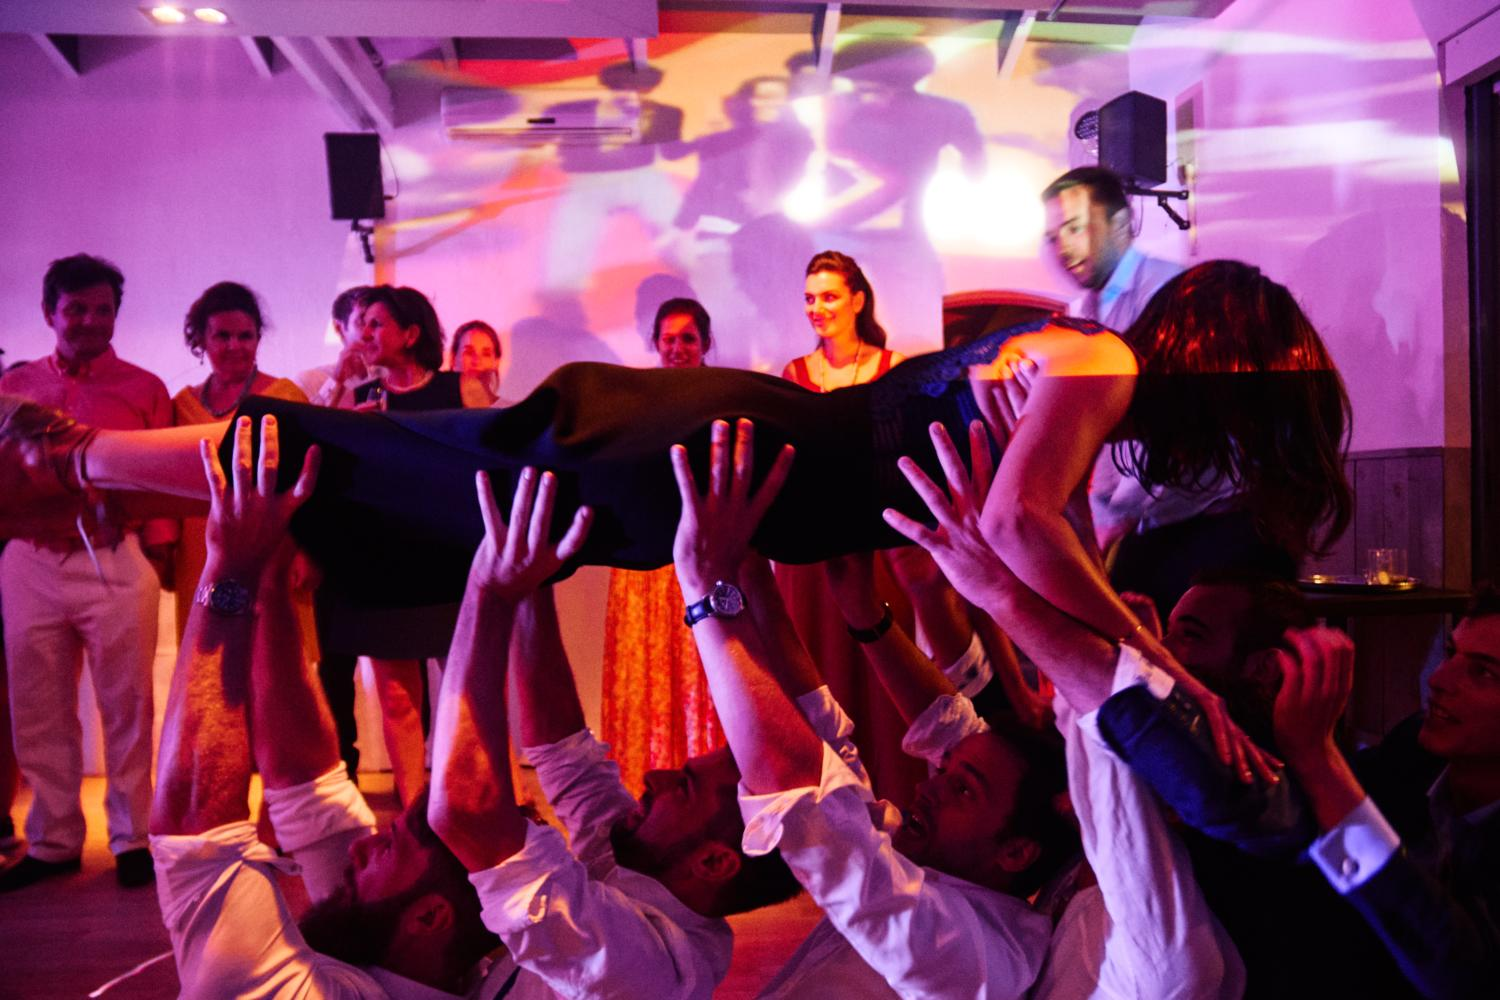 A wedding guest crowdsurfing on the dancefloor at Chateau Val Joanis